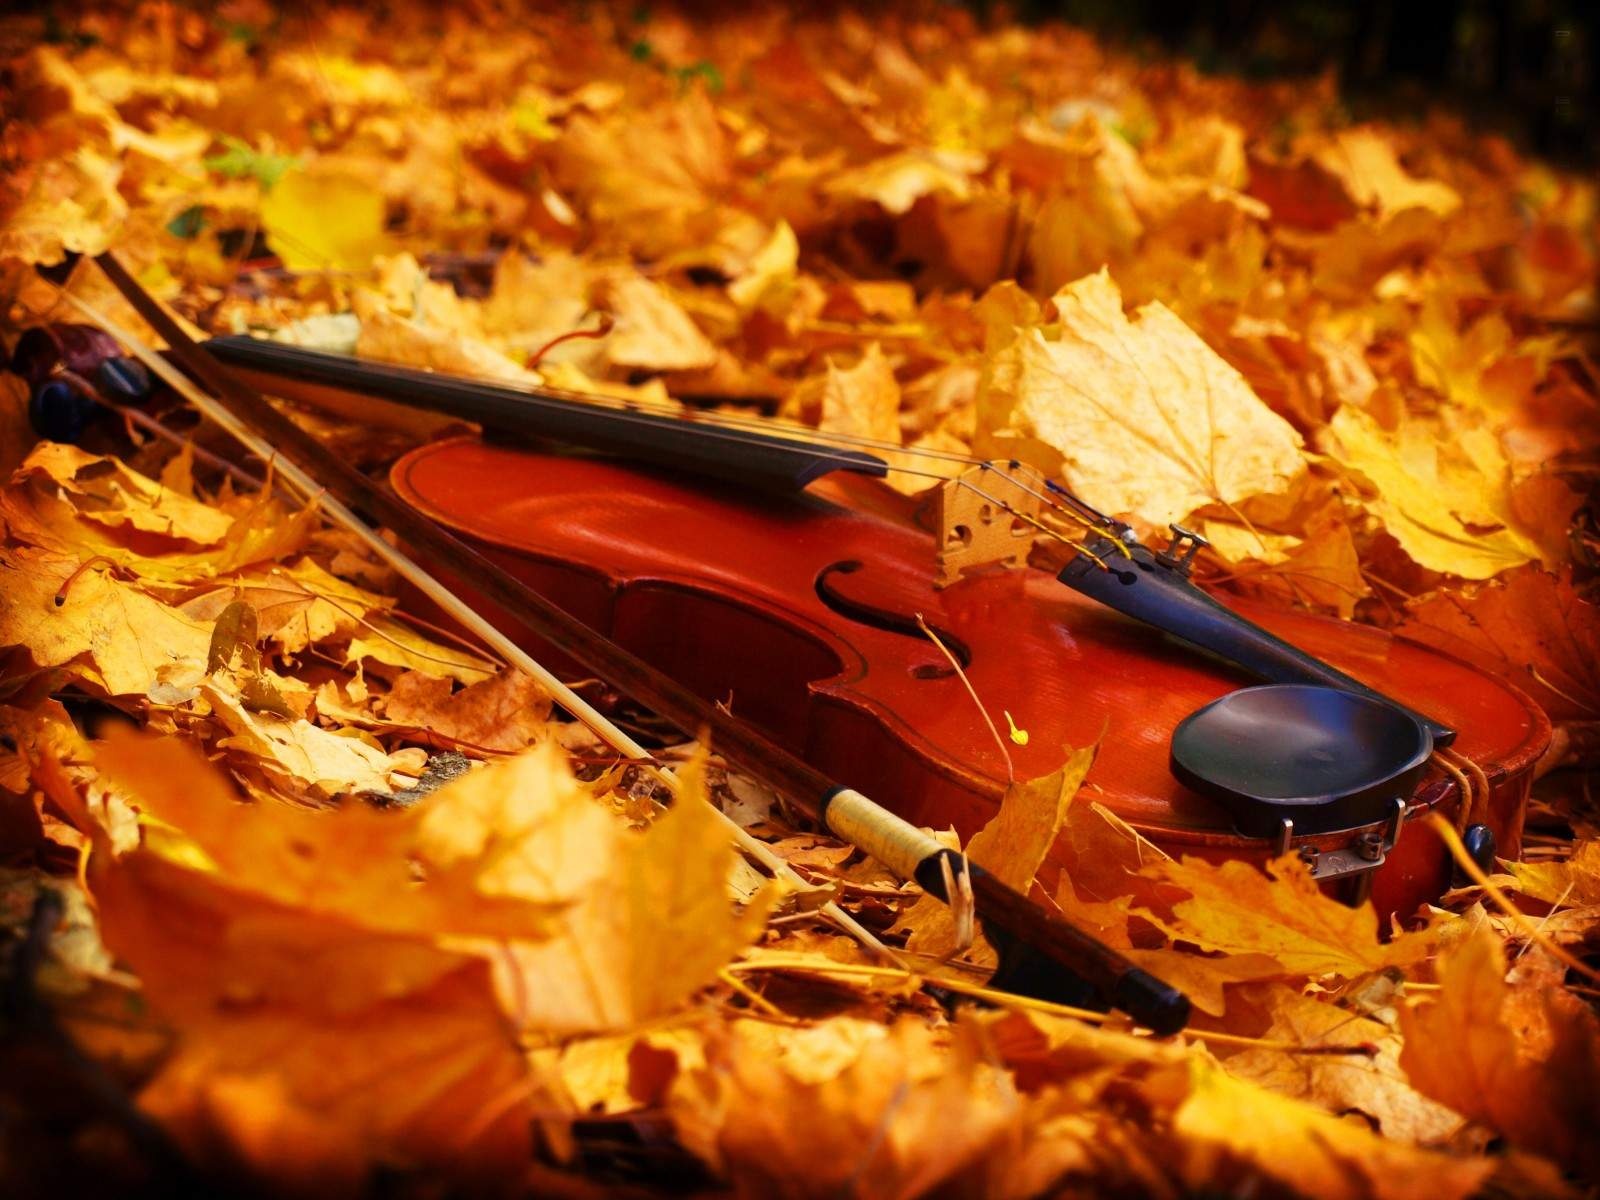 Violin in the autumn wallpape - Music Violins Collection